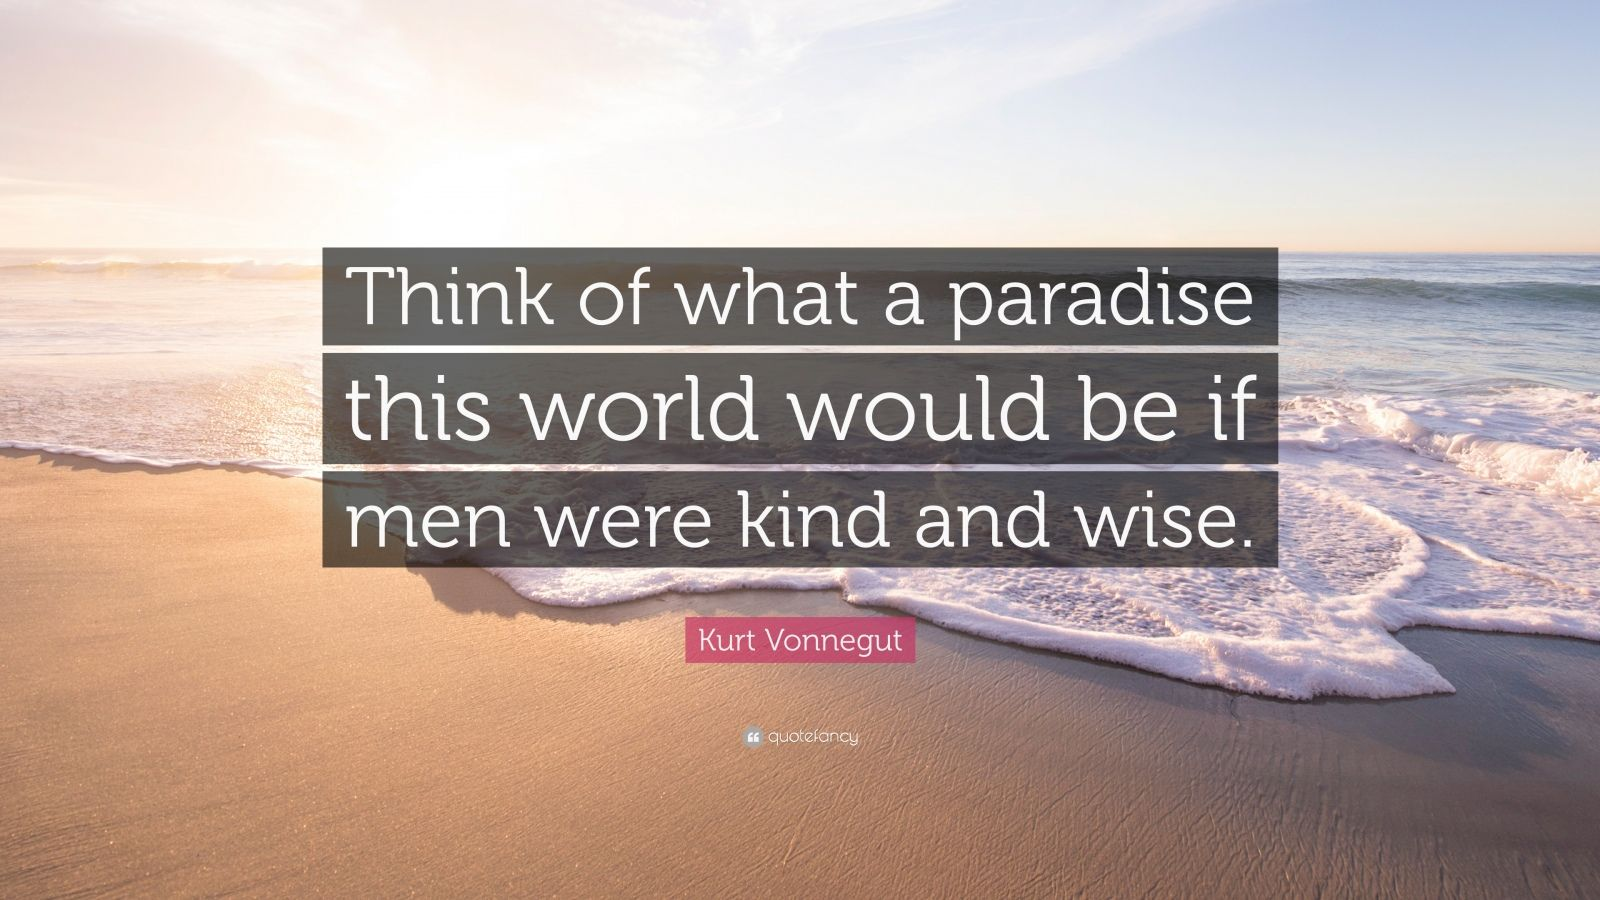 """Kurt Vonnegut Quote: """"Think of what a paradise this world would be if men were kind and wise."""""""